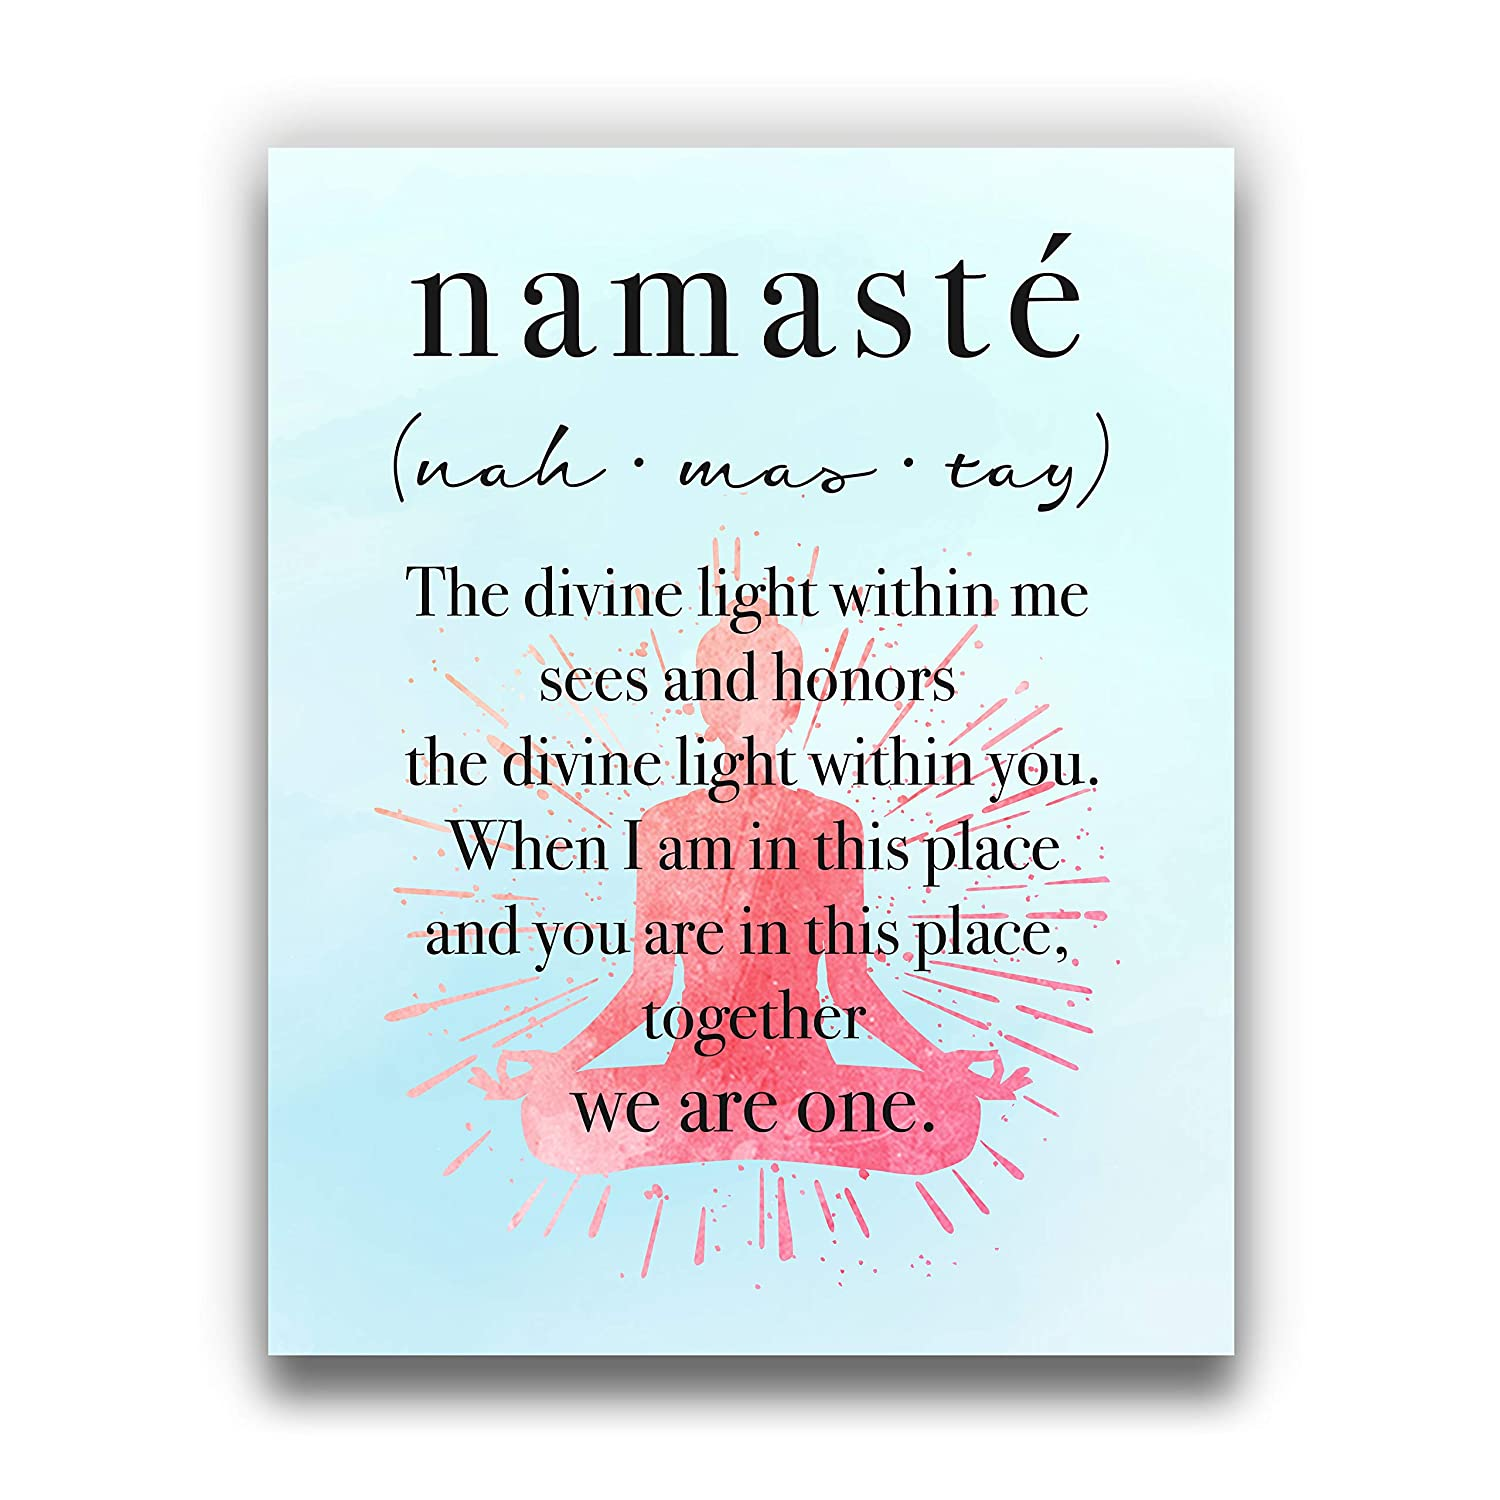 """Namaste """"Together, We Are One"""" Inspirational Quote   8x10 UNFRAMED Wall Art Print   Ideal Modern Home, Studio, or Office Décor   Yoga, Zen, Buddhist, Motivational Decor"""